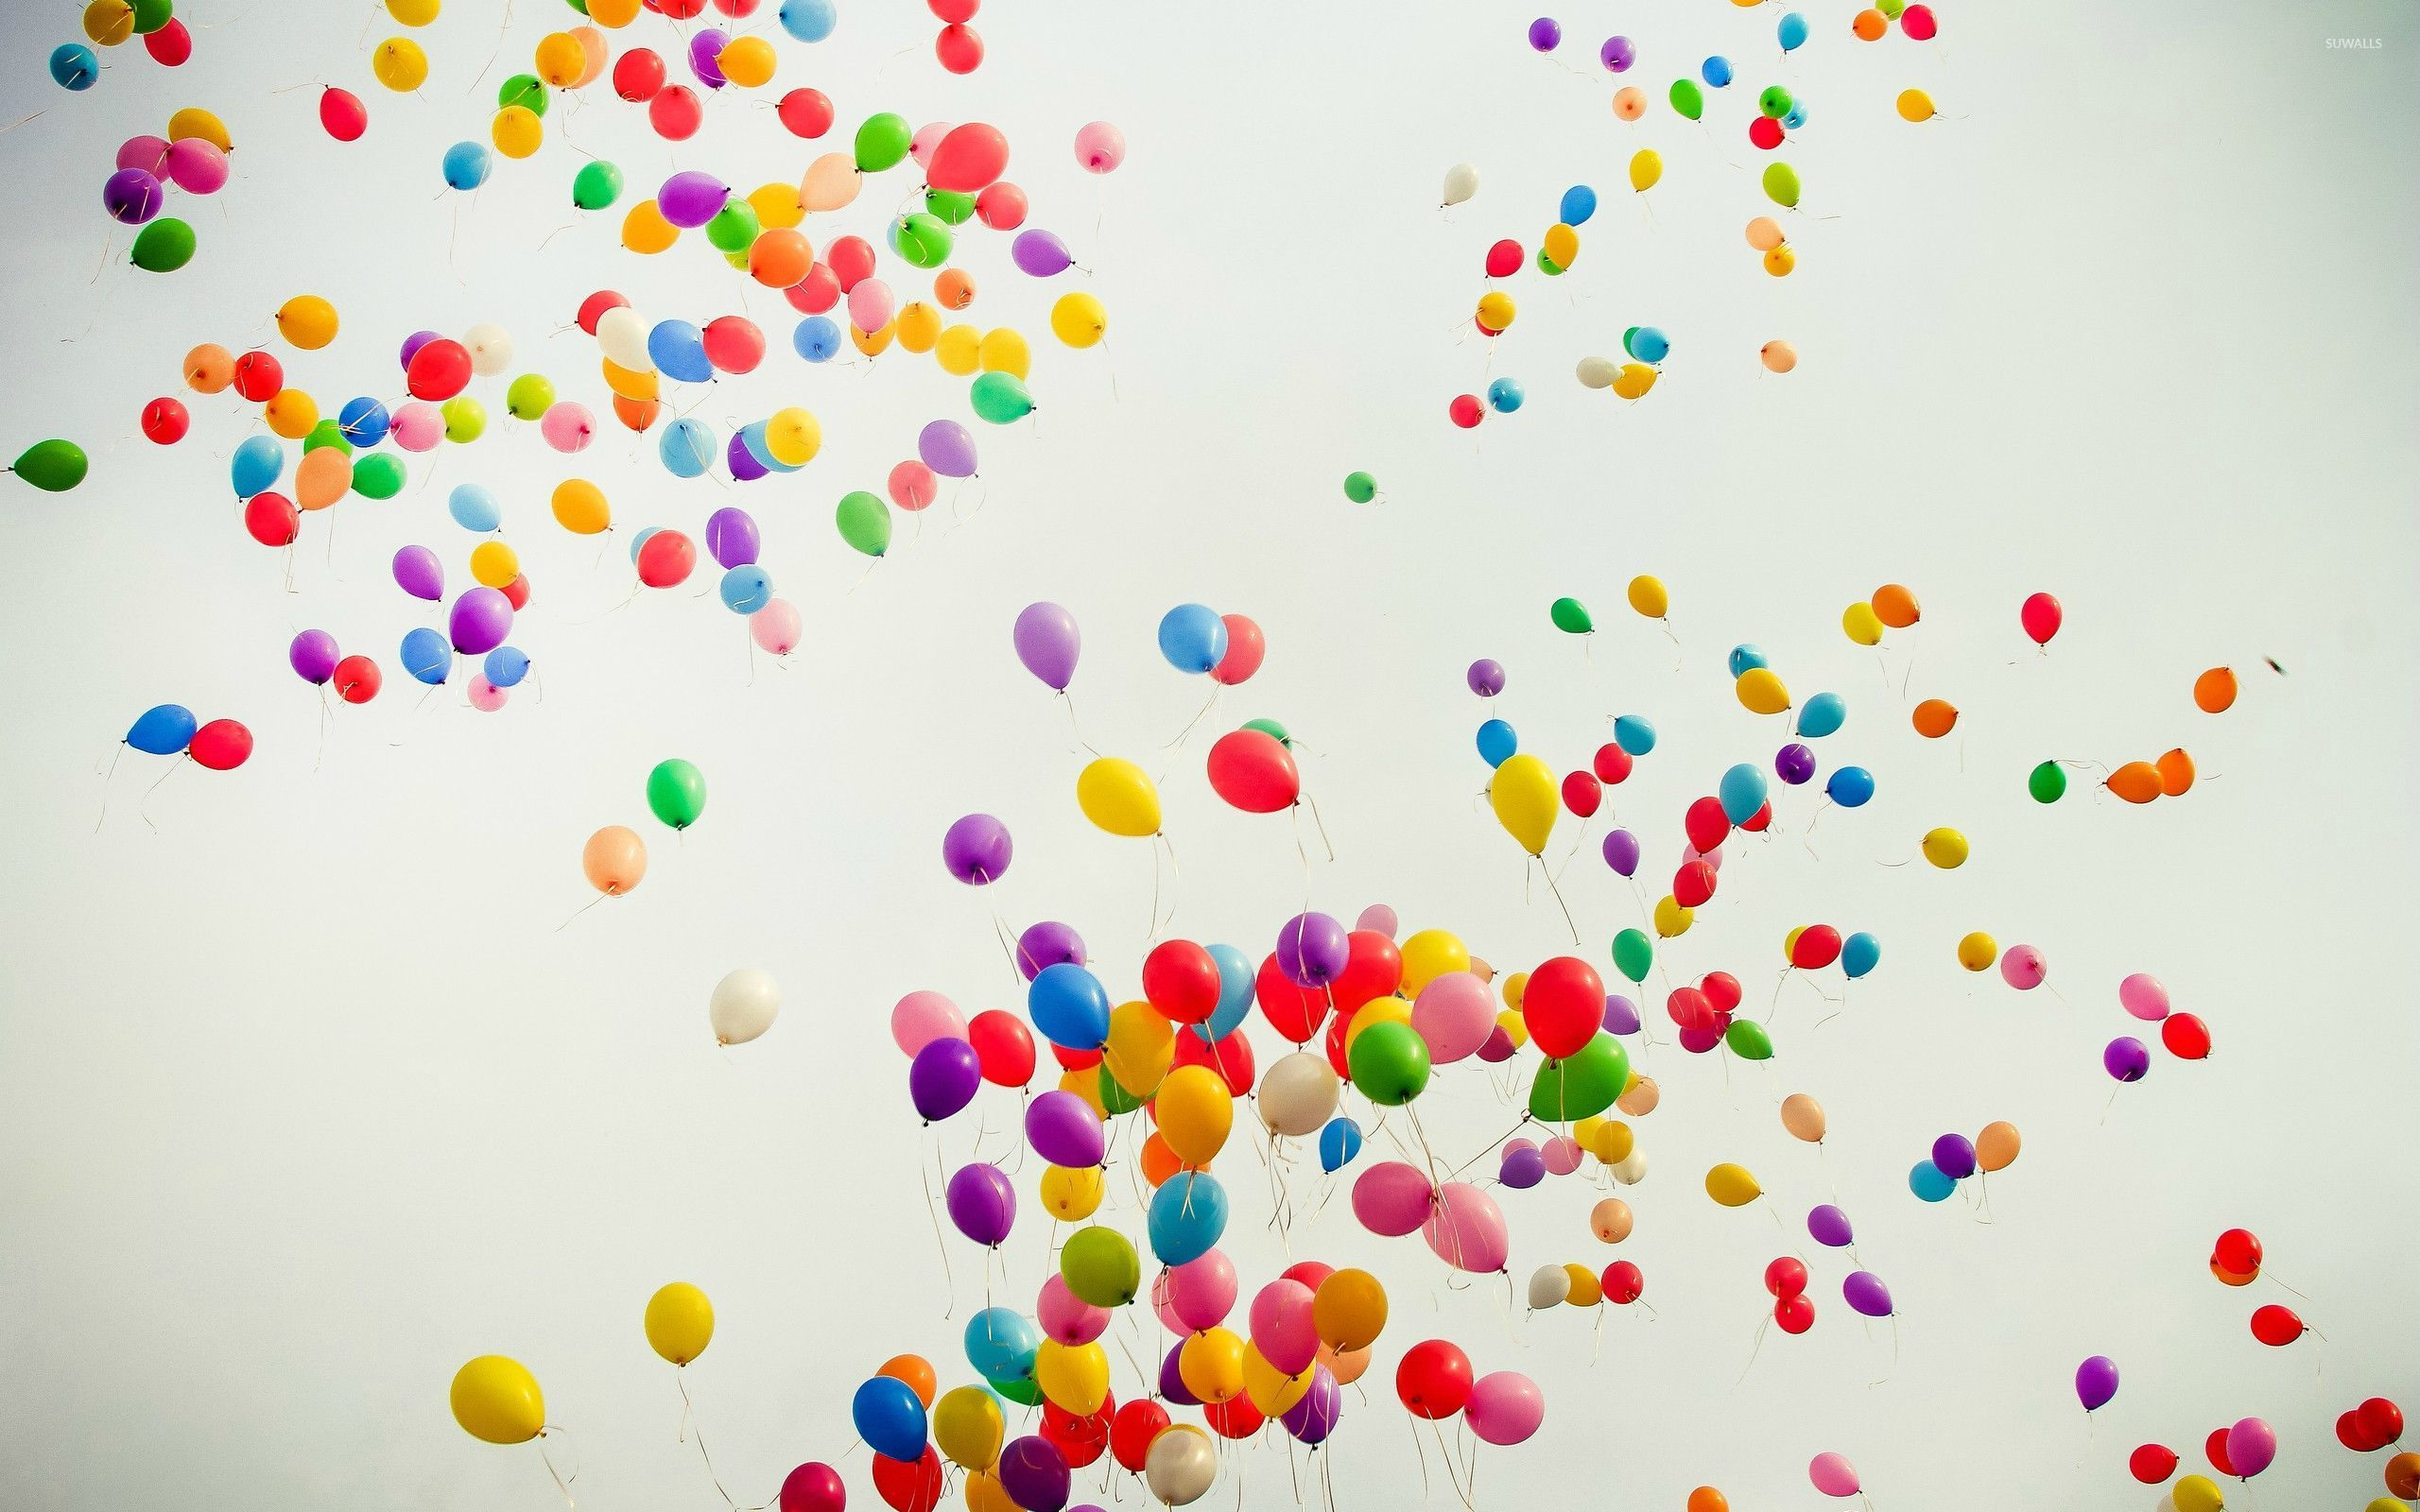 Colorful Balloons Wallpaper